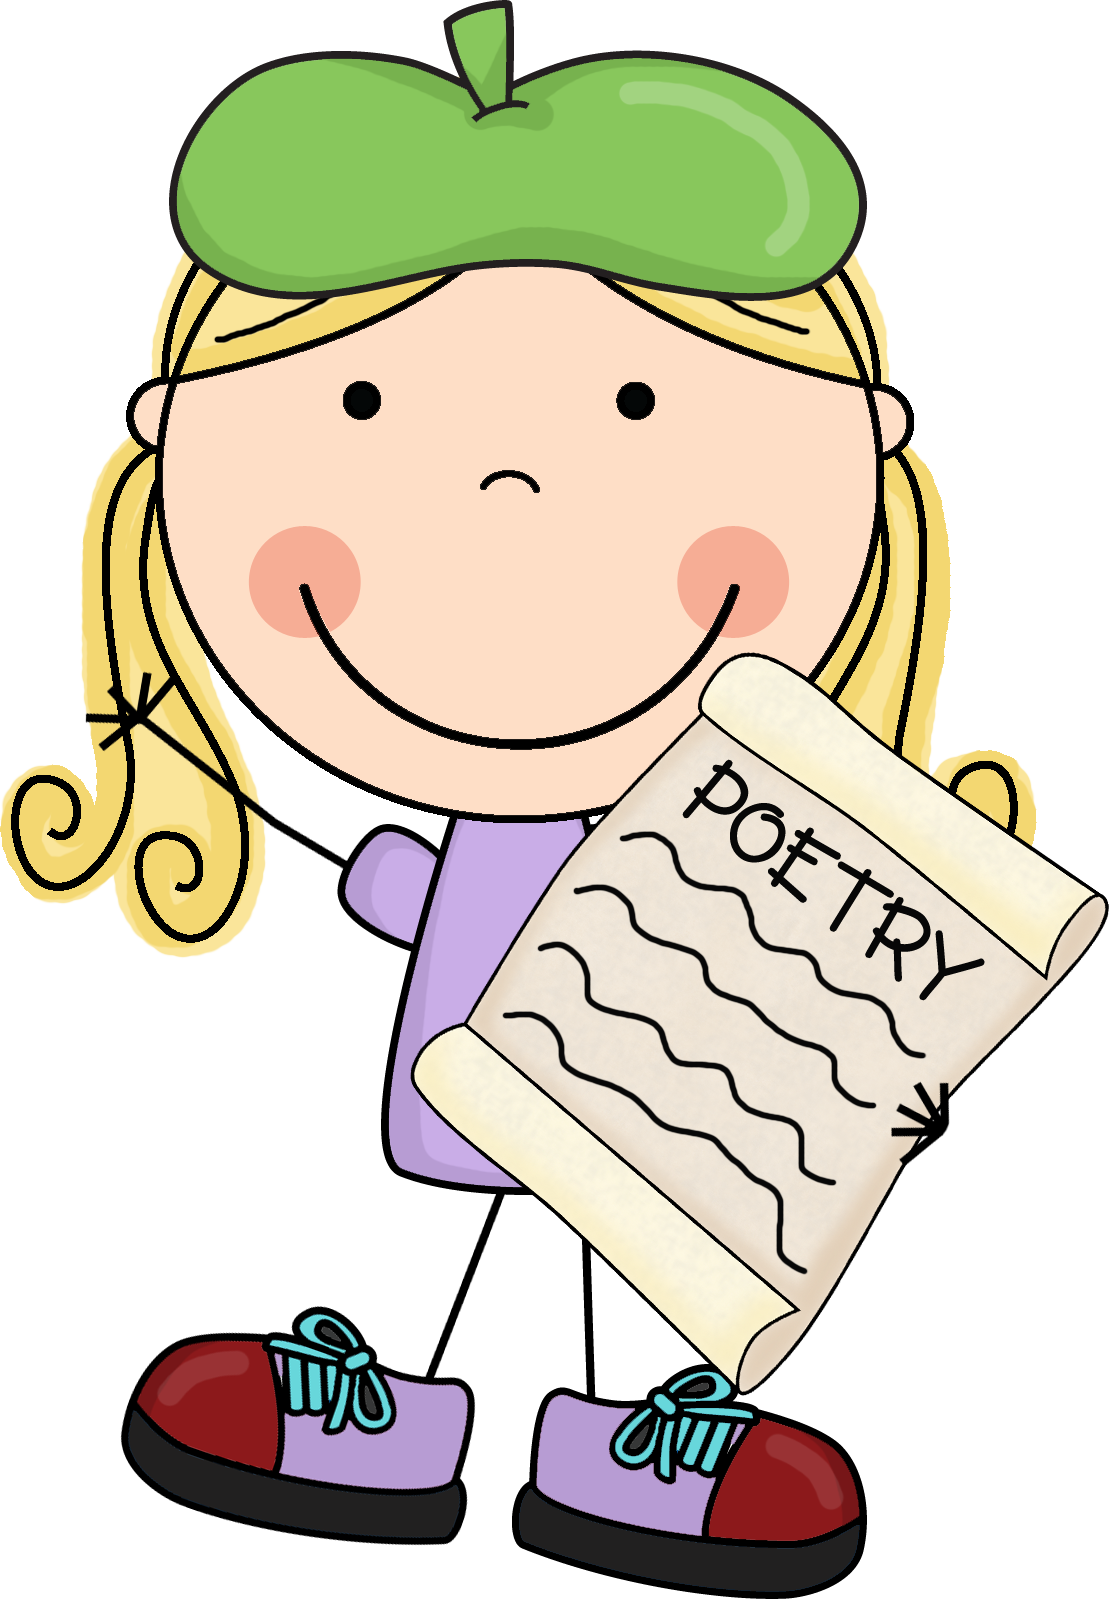 Poetry cilpart surprising i. Poem clipart drama mask clip art free